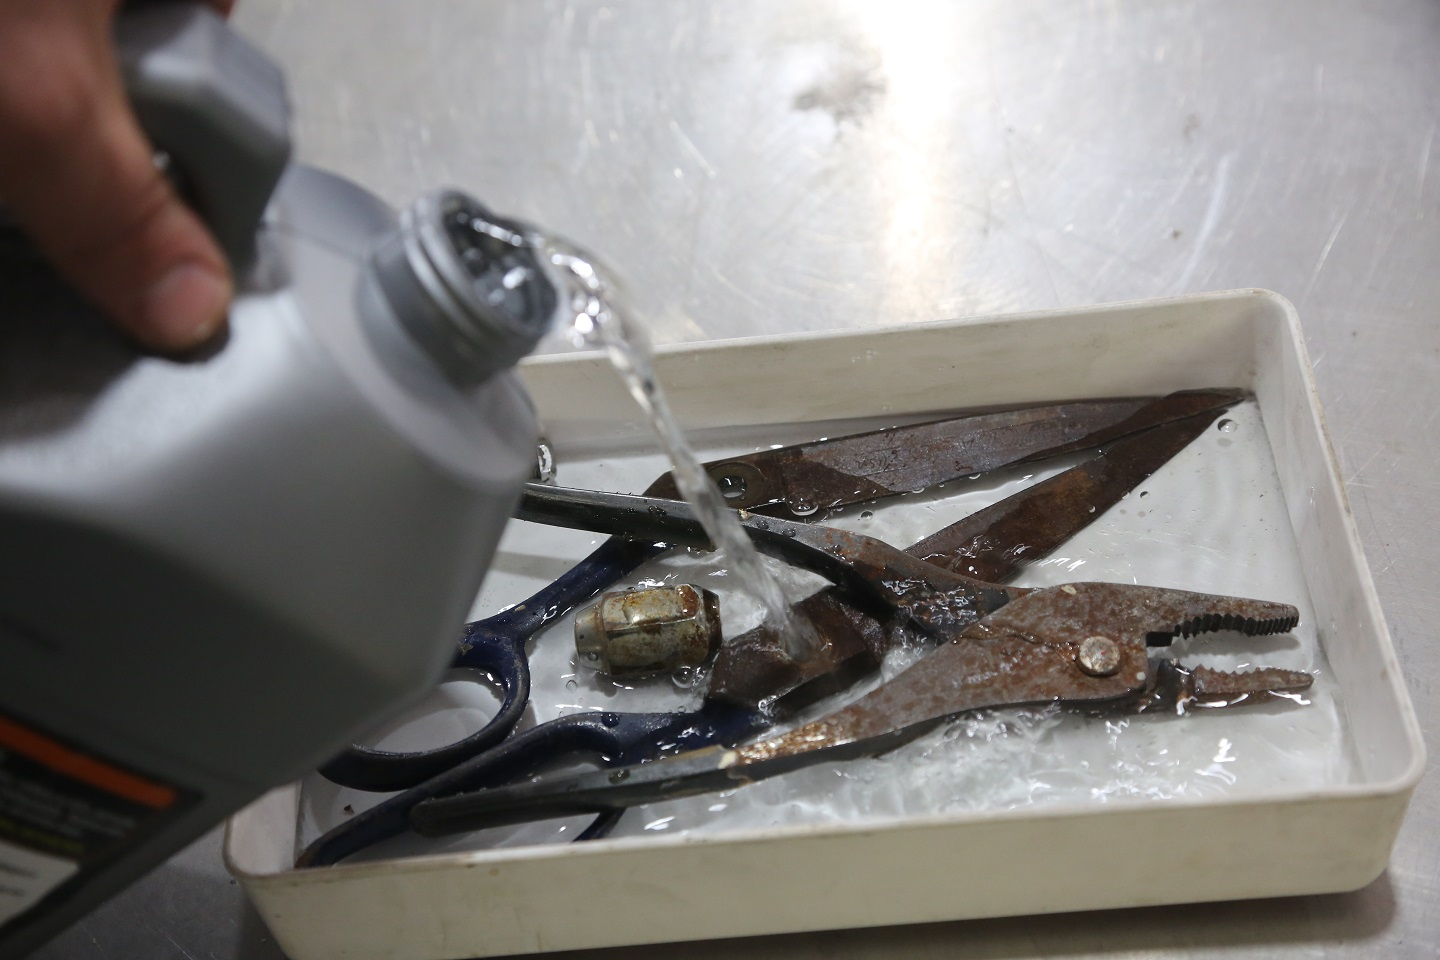 The tools were placed in a plastic tray and covered with just enough WD-40 Rust Remover Soak to cover the rusty bits. Then we left it to soak overnight.